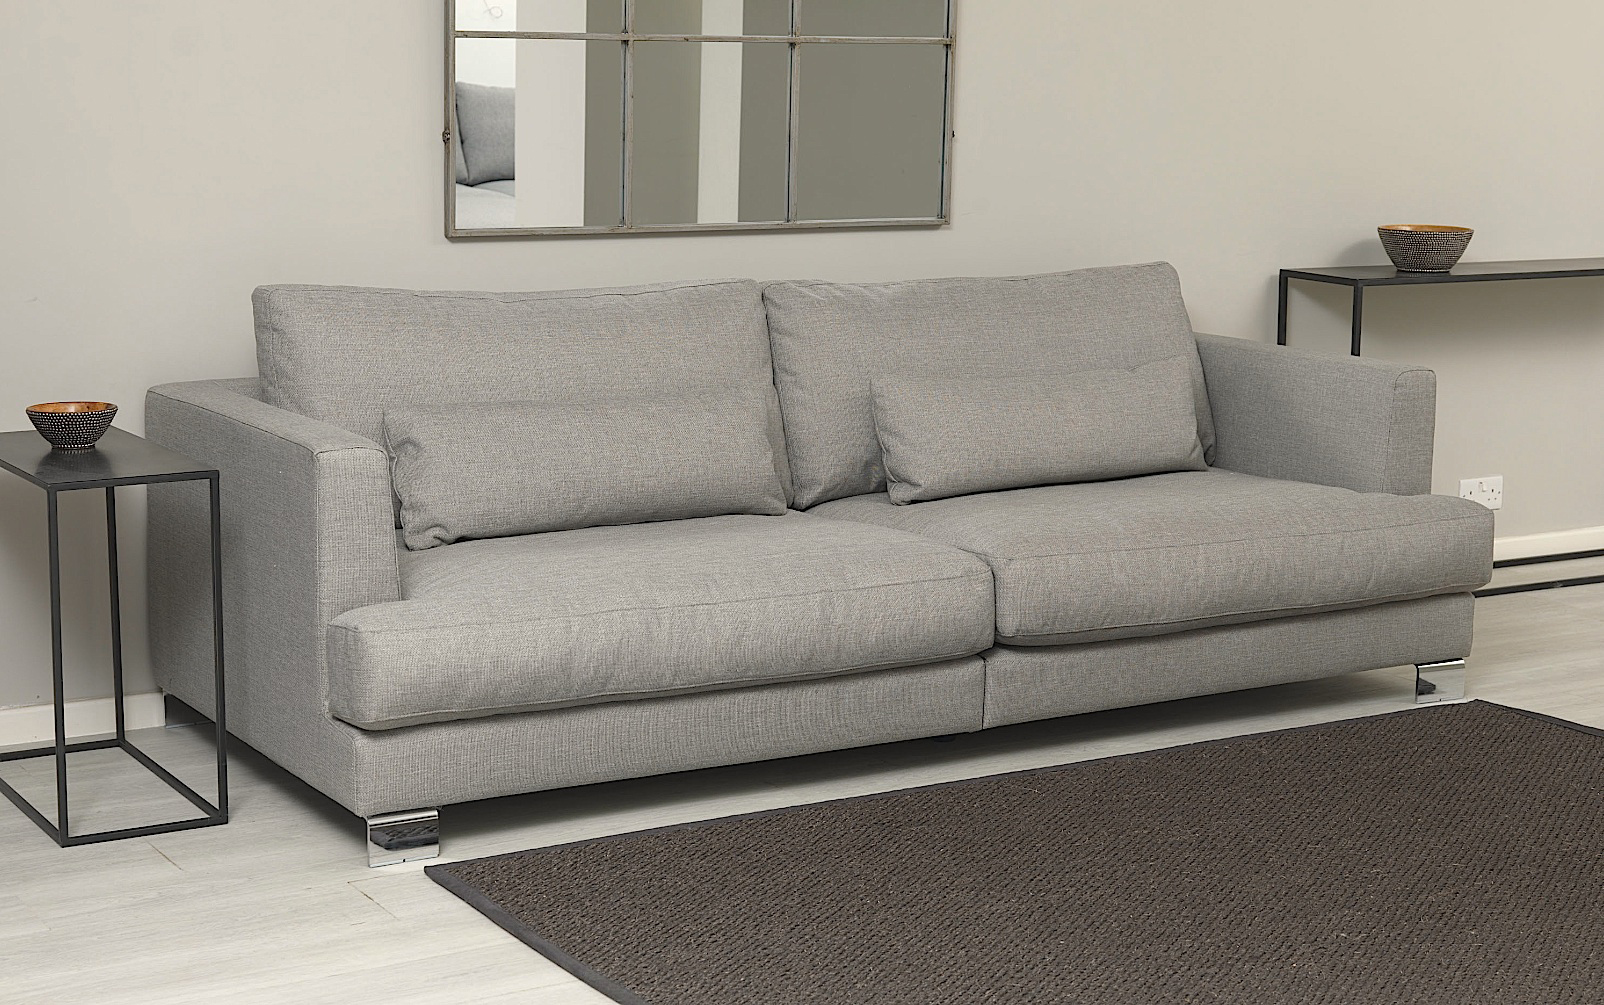 Conrad 2 Seater Sofa-30213